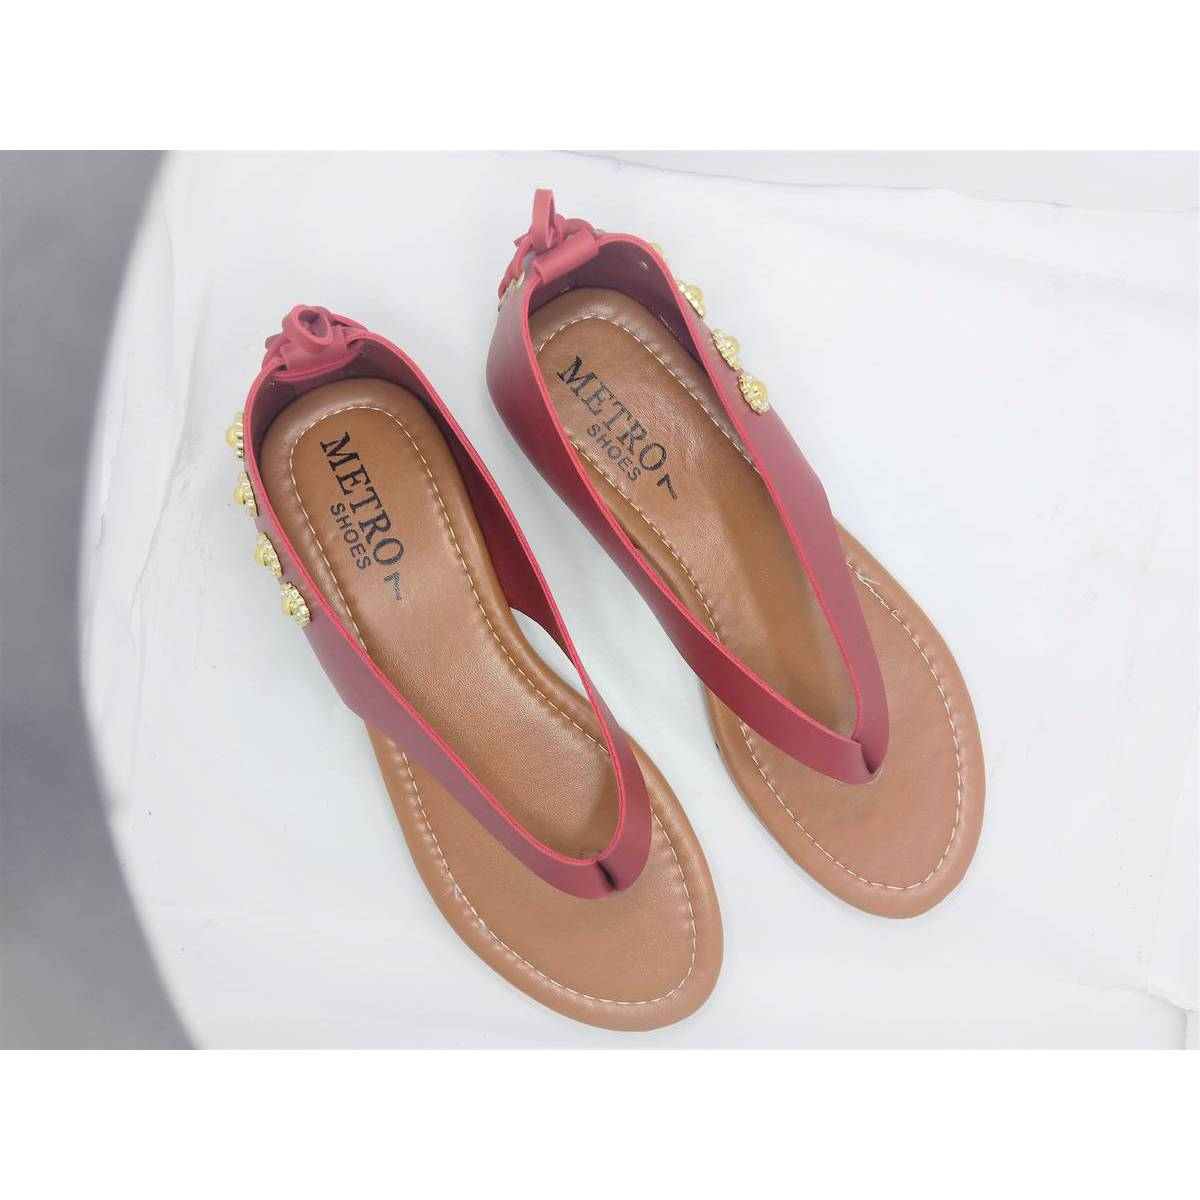 Women fashion Eid colletion 2021 flat sandals/ best for indoor and outdoor casual wear